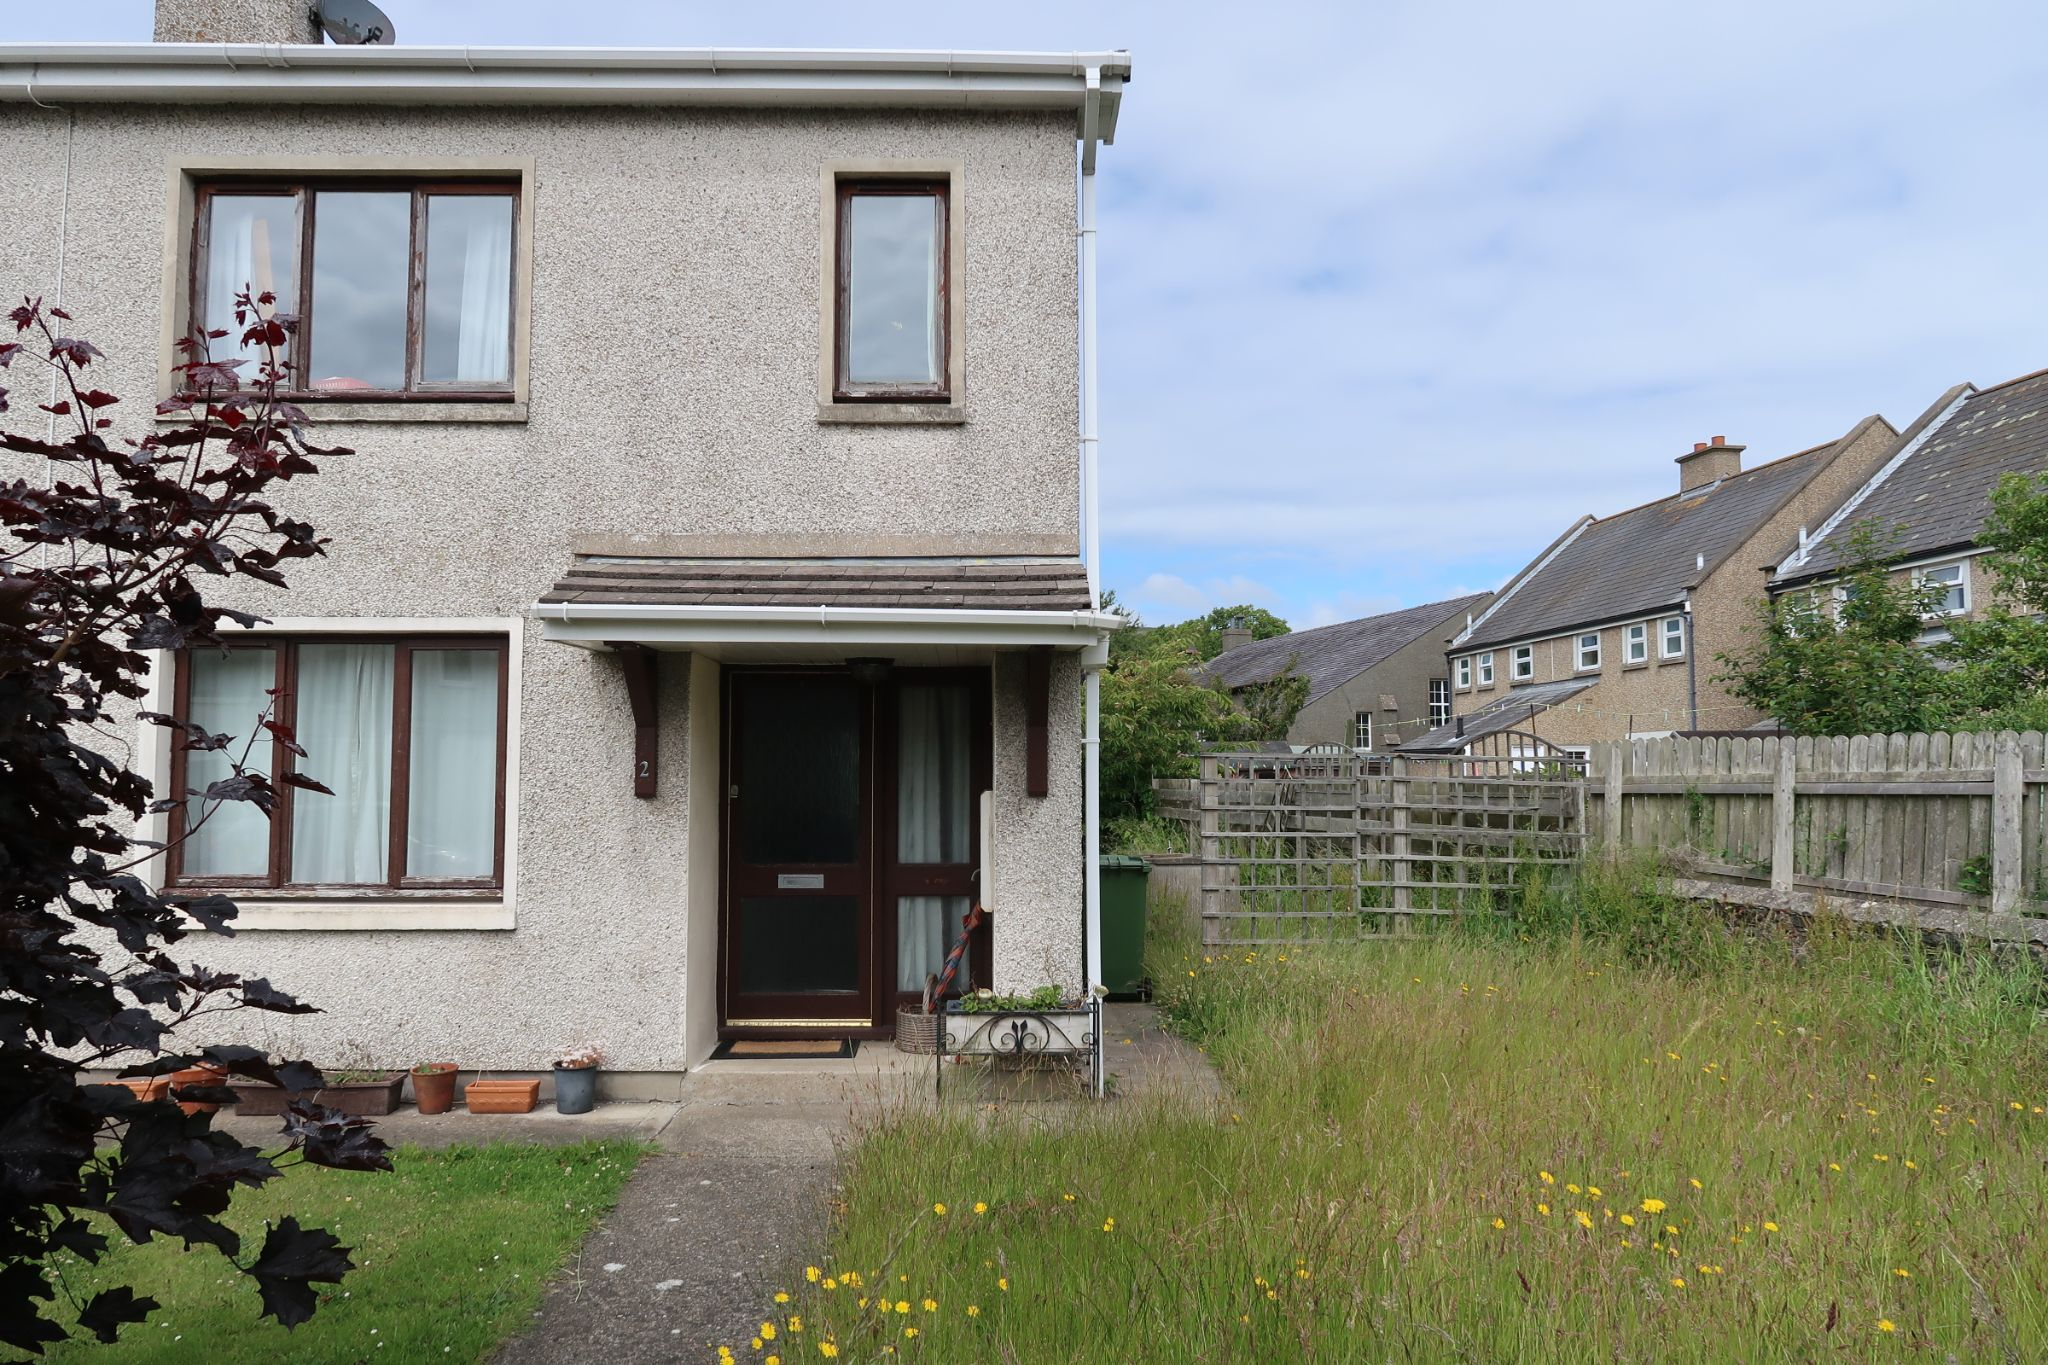 3 bedroom semi-detached house For Sale in Port Erin - Photograph 1